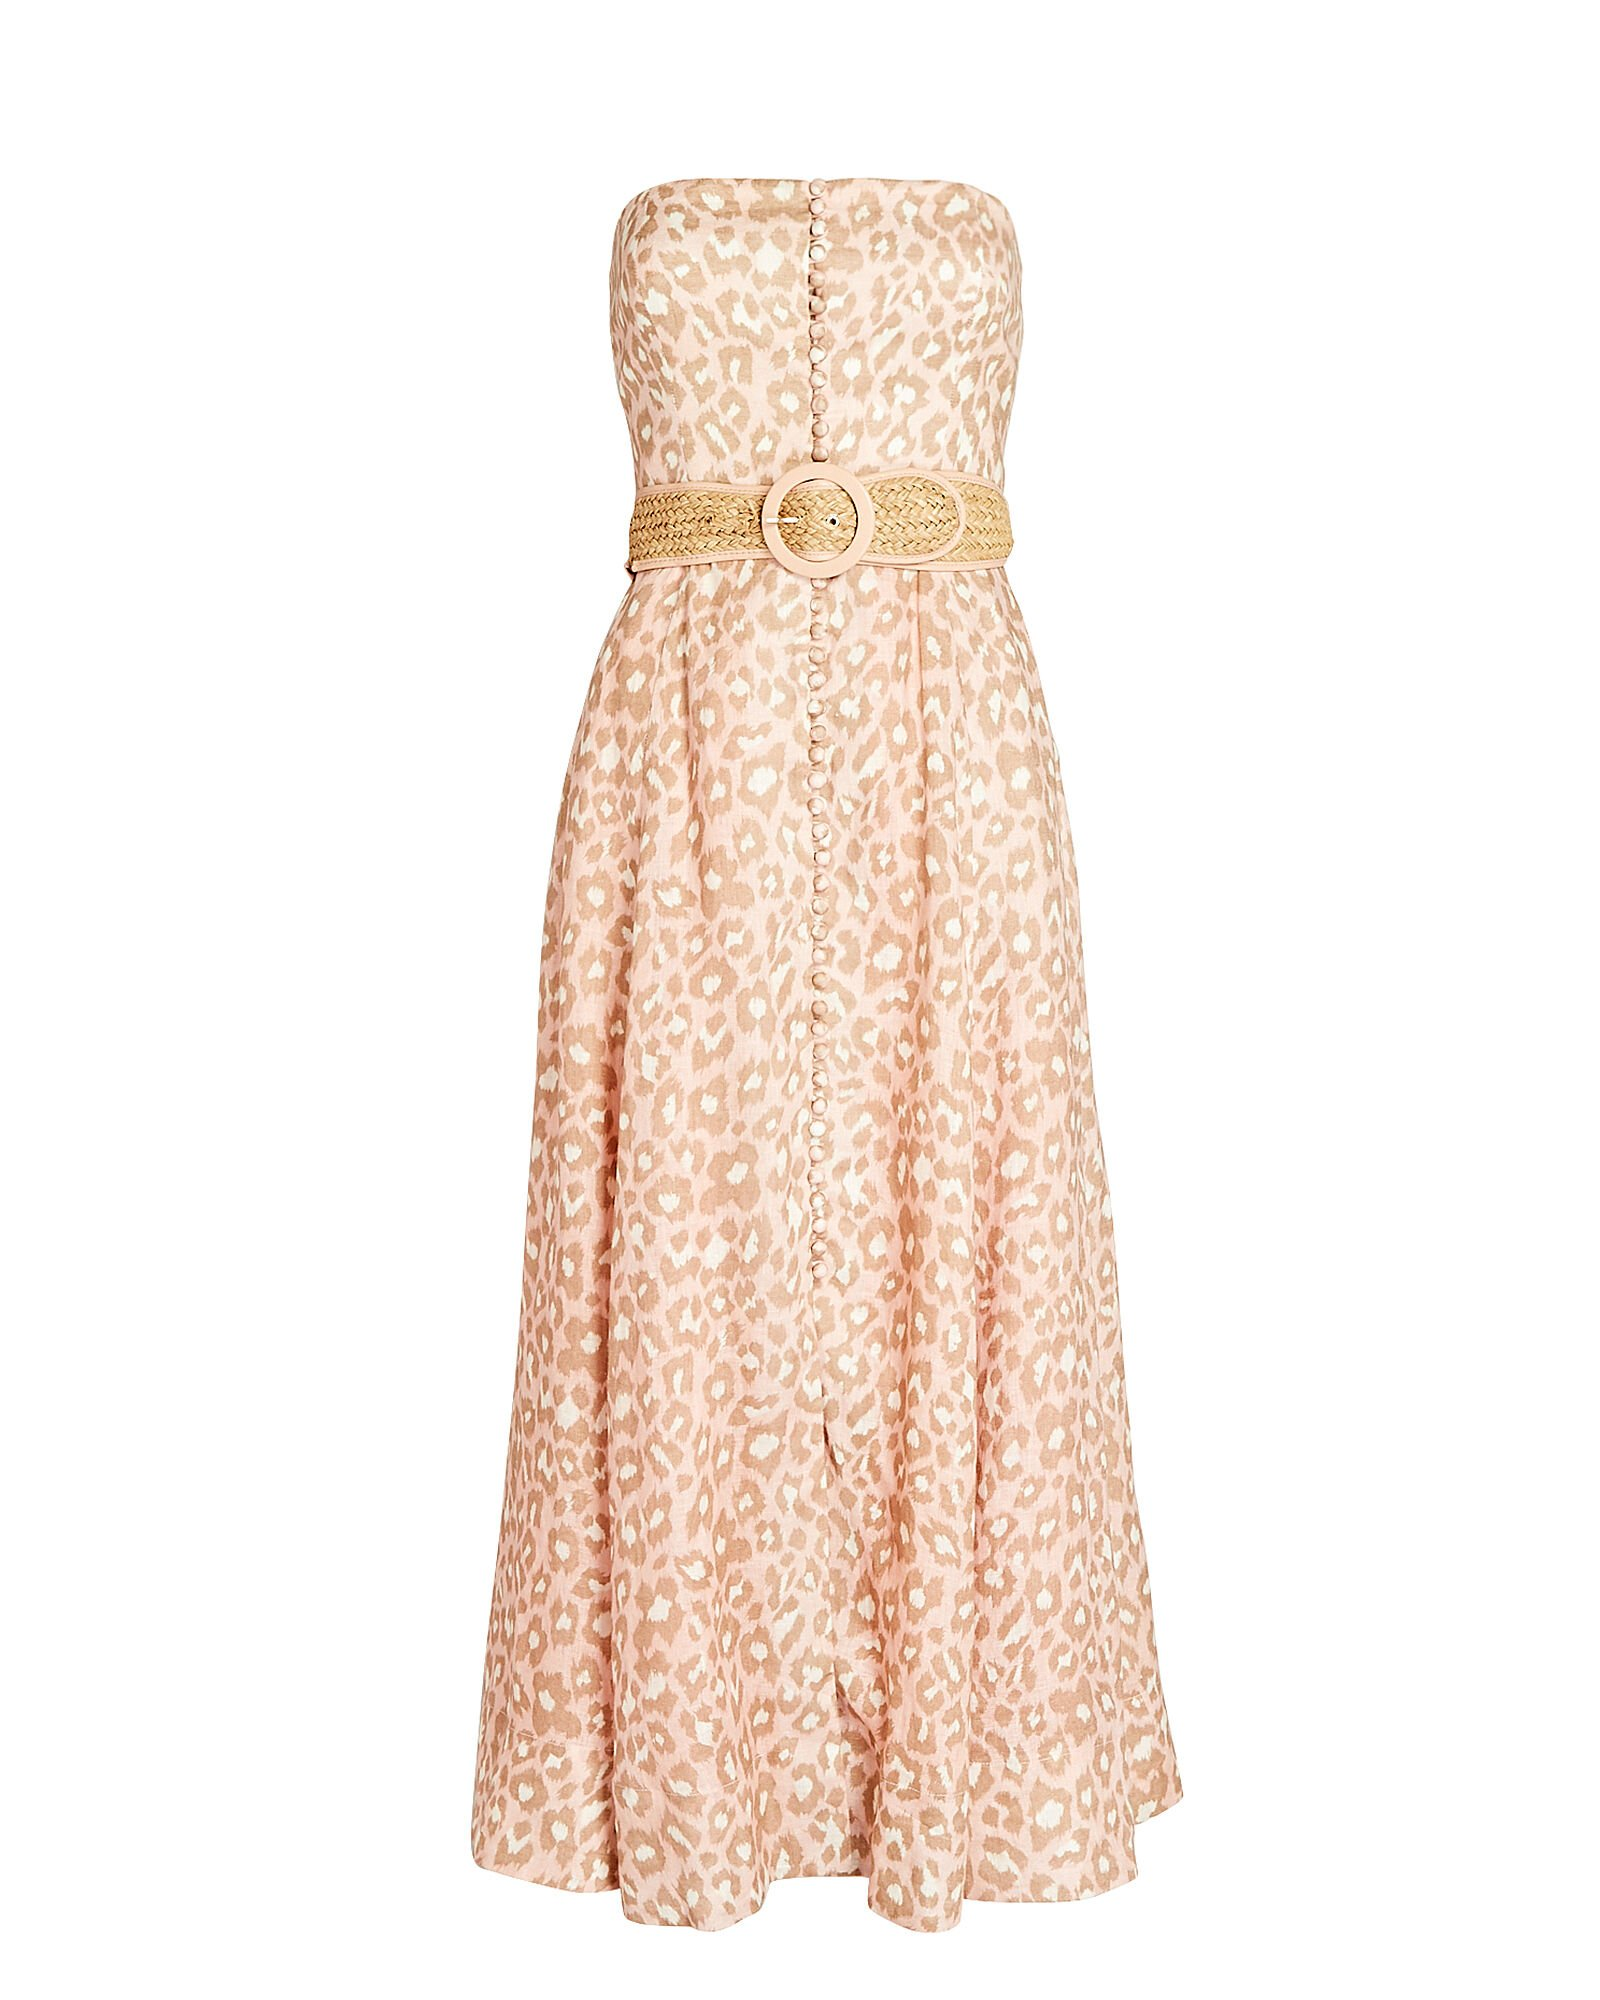 Carnaby Leopard Strapless Midi Dress, PINK/BROWN, hi-res